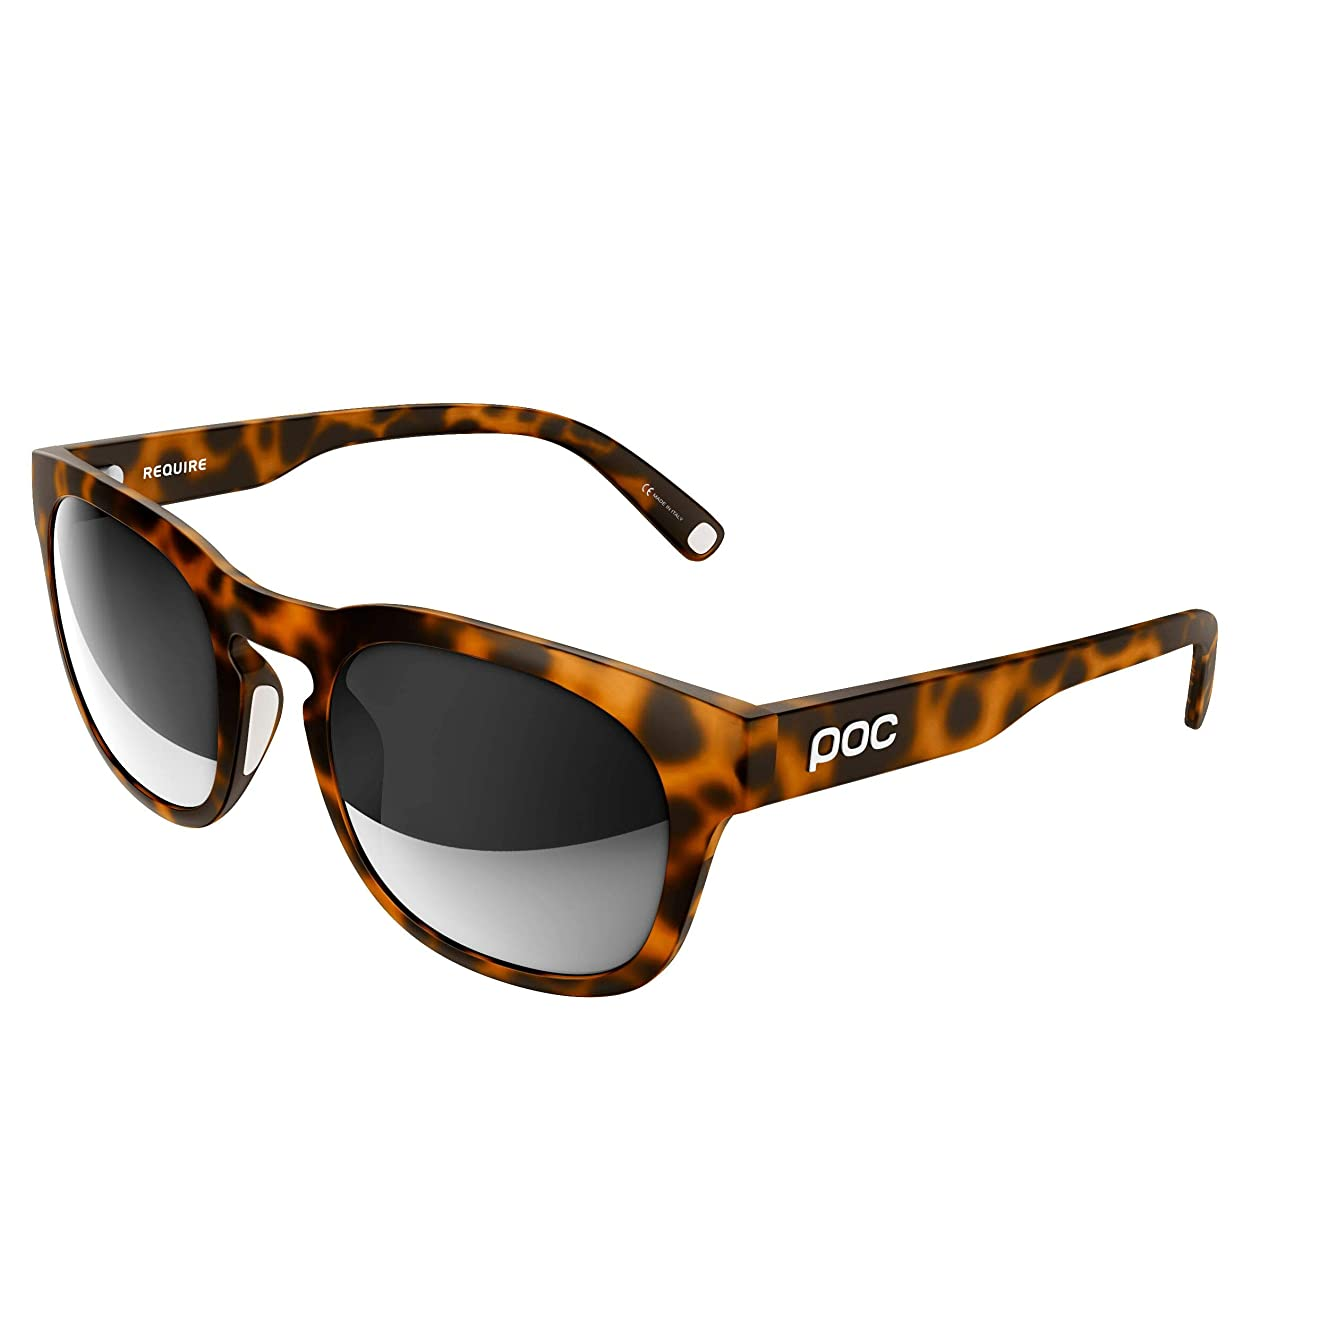 POC - Require, Lightweight Sunglasses